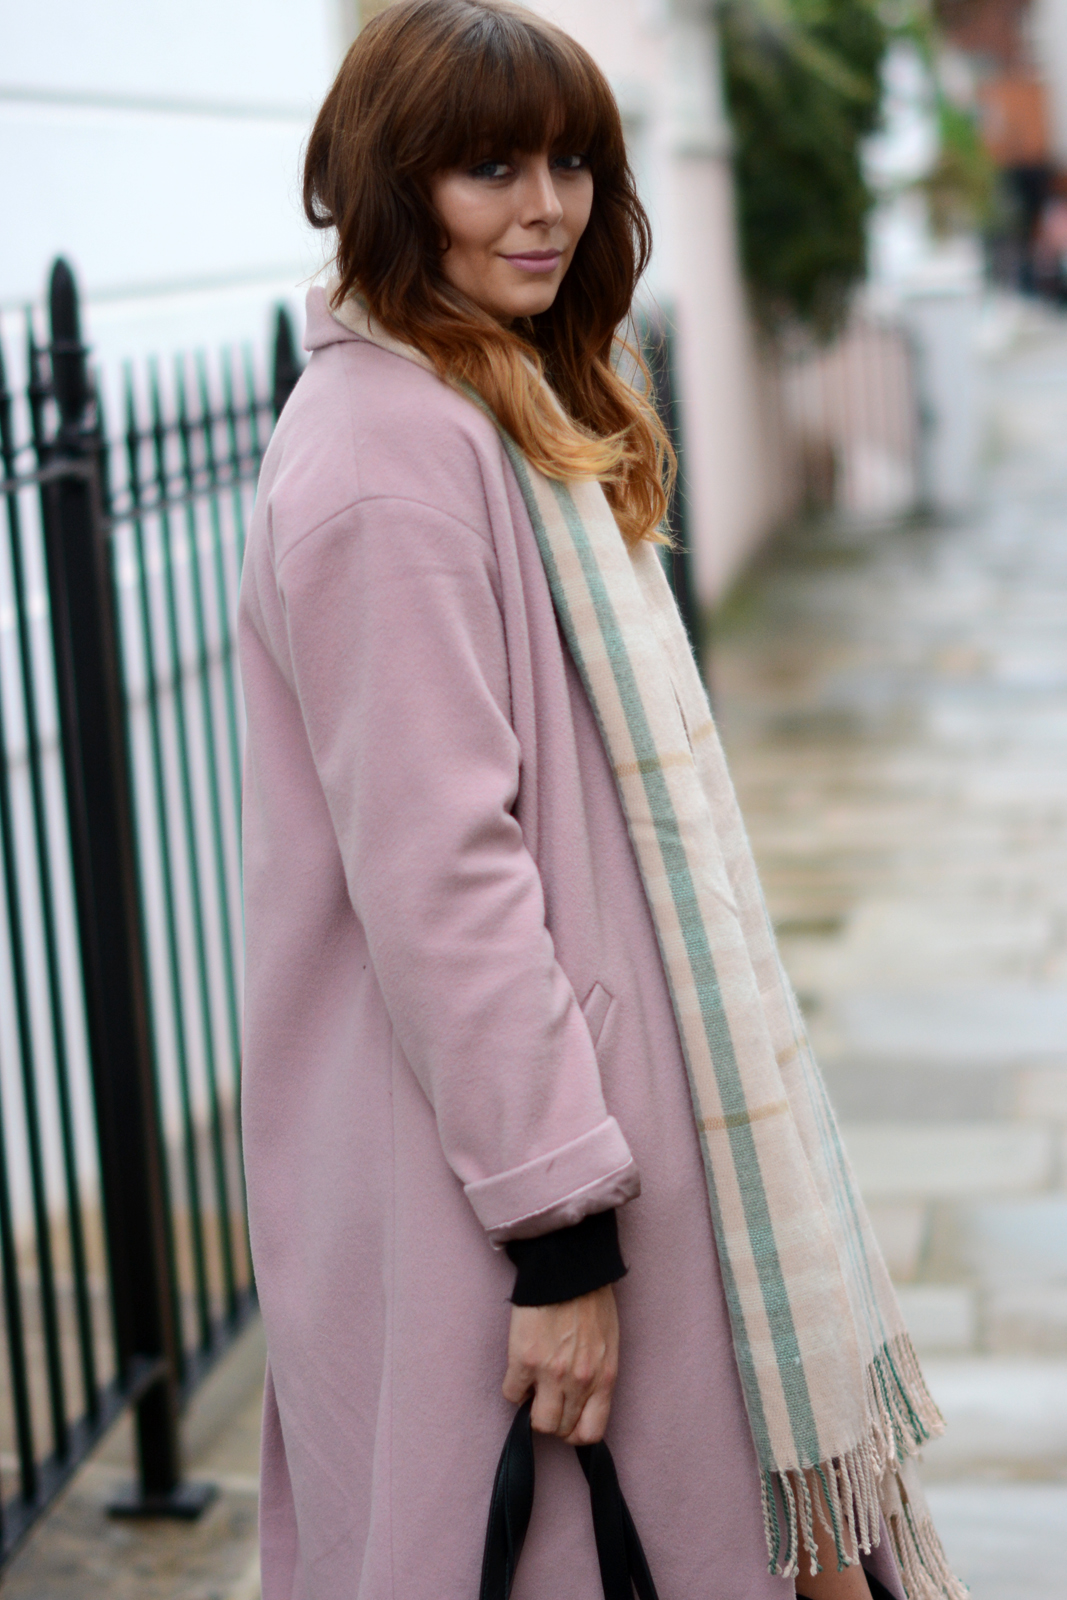 EJSTYLE - Pink Coat, Pink Grey blanket scarf, 60's style, Fall Autumn OOTD, influential fashion blogger London